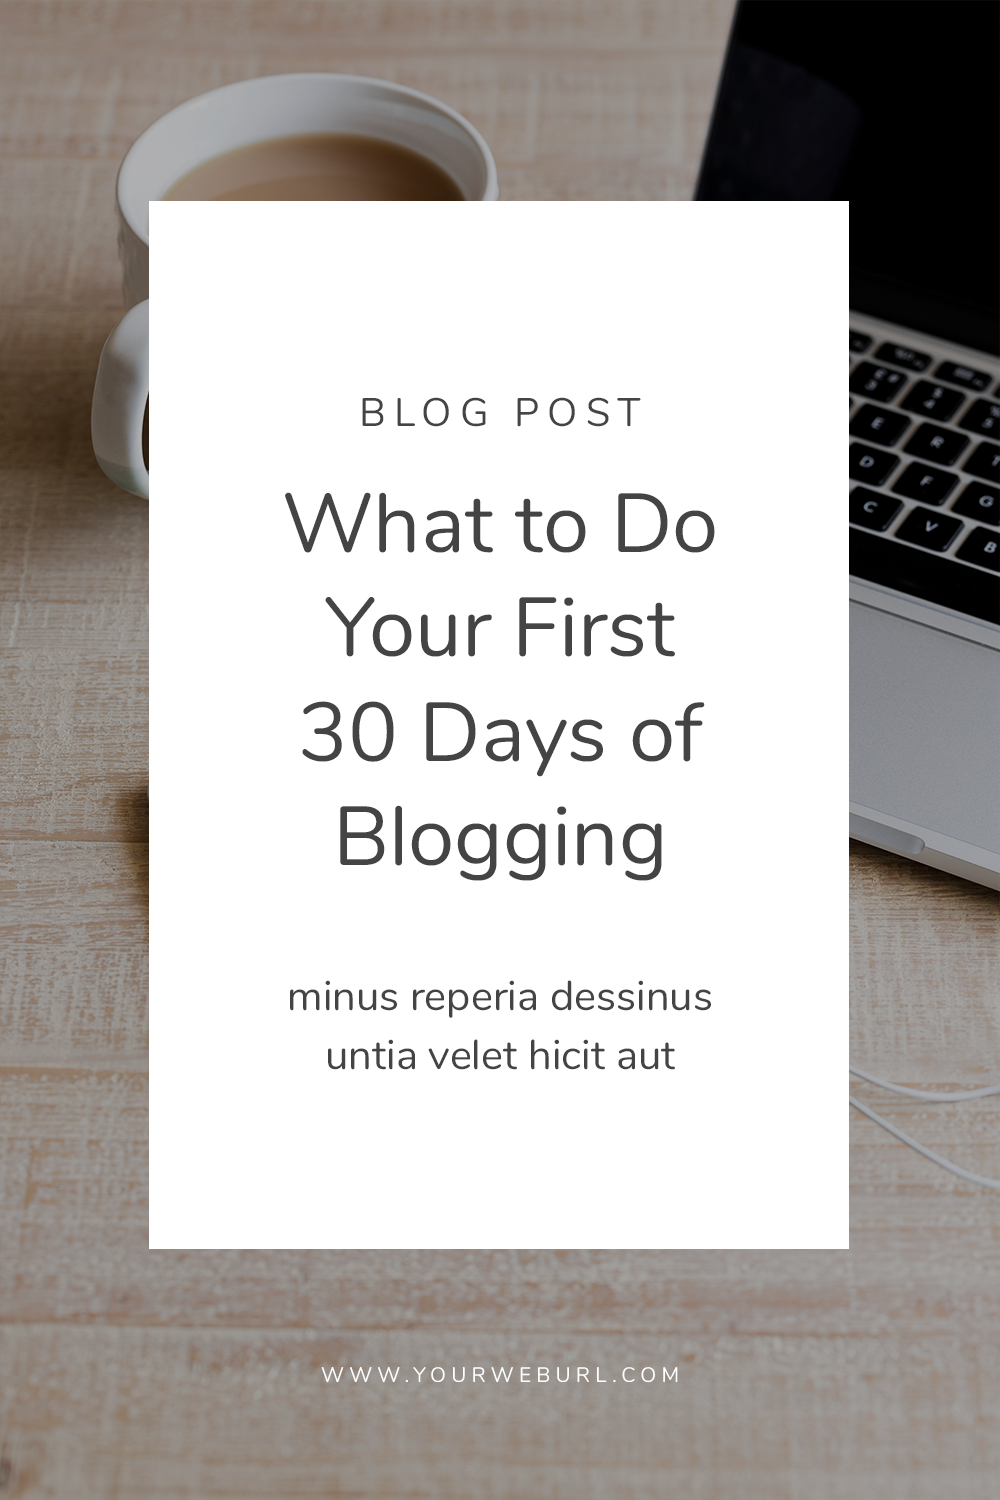 What to Do Your First 30 Days of Blogging